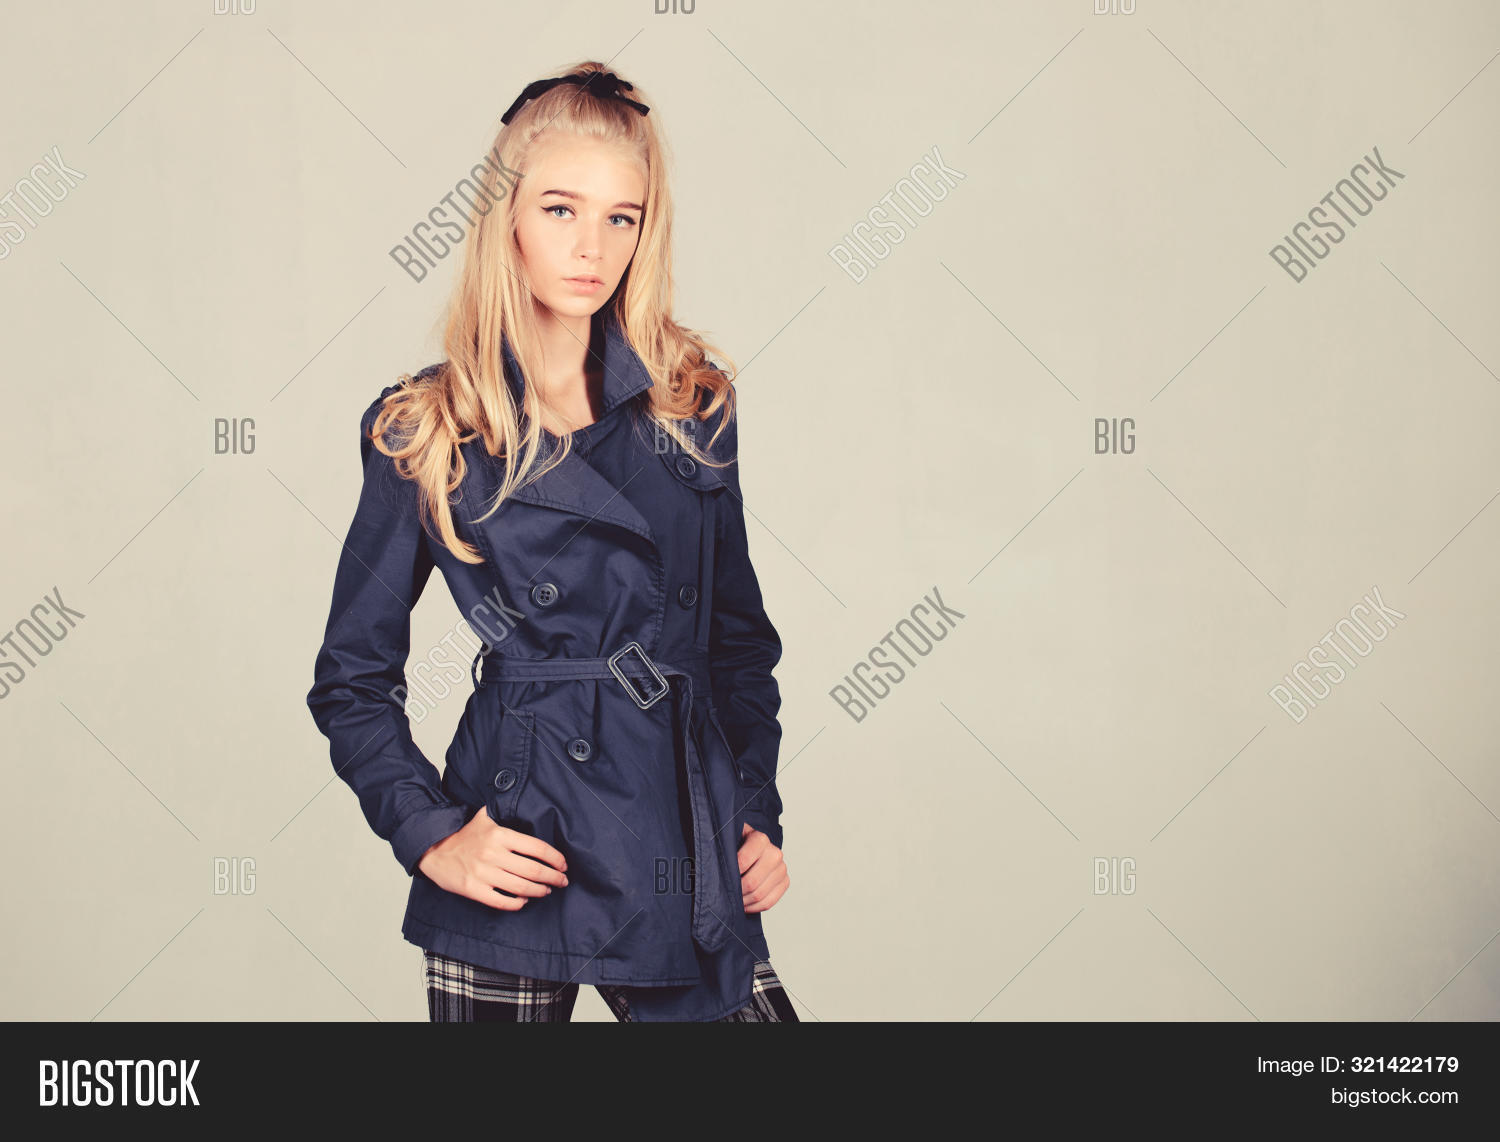 accessory,autumn,background,beautiful,beauty,blonde,casual,clothes,coat,collar,concept,face,fashion,fashionable,female,girl,grey,hair,have,hipster,jacket,life,lifestyle,makeup,model,modern,must,natural,people,person,posing,professional,season,shopping,spring,street,style,stylish,trench,trenchcoat,trend,trendy,wear,woman,young